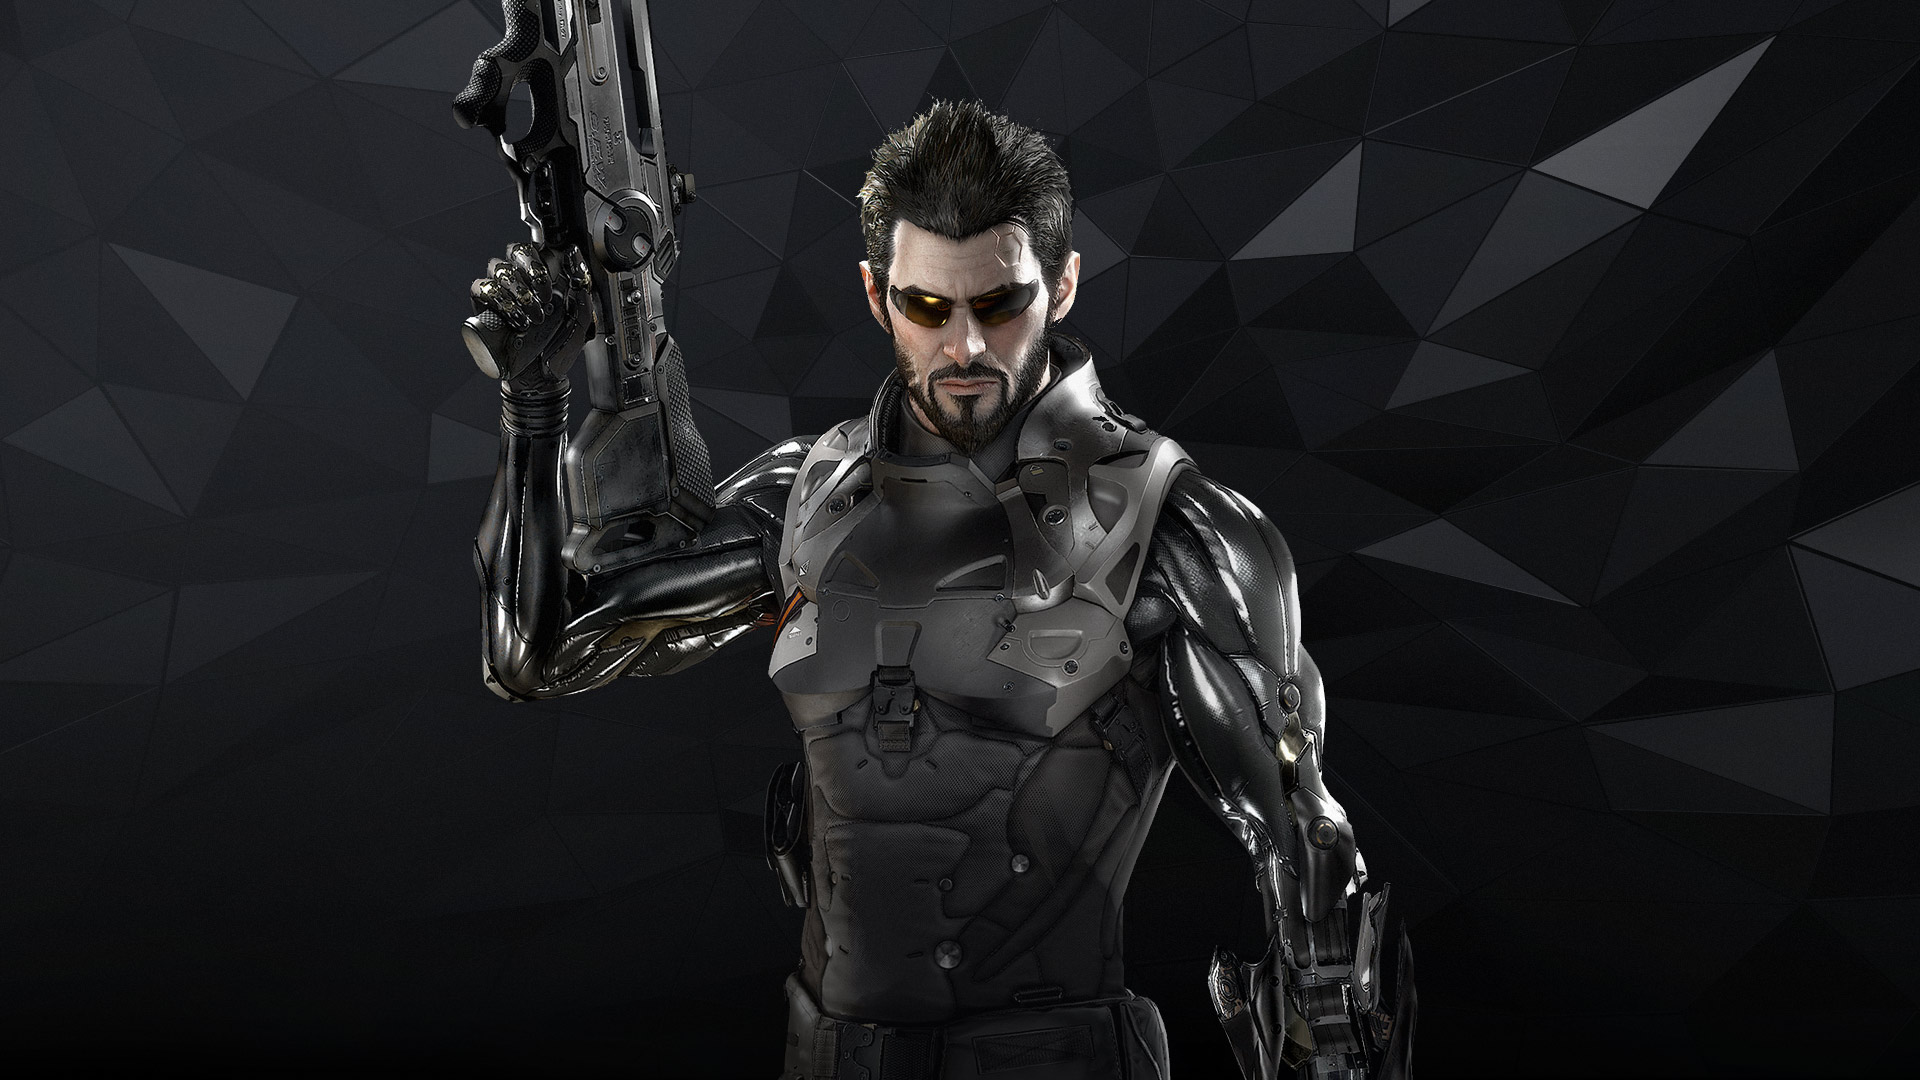 Deus Ex Mankind Divided 2016 Wallpapers | HD Wallpapers ...